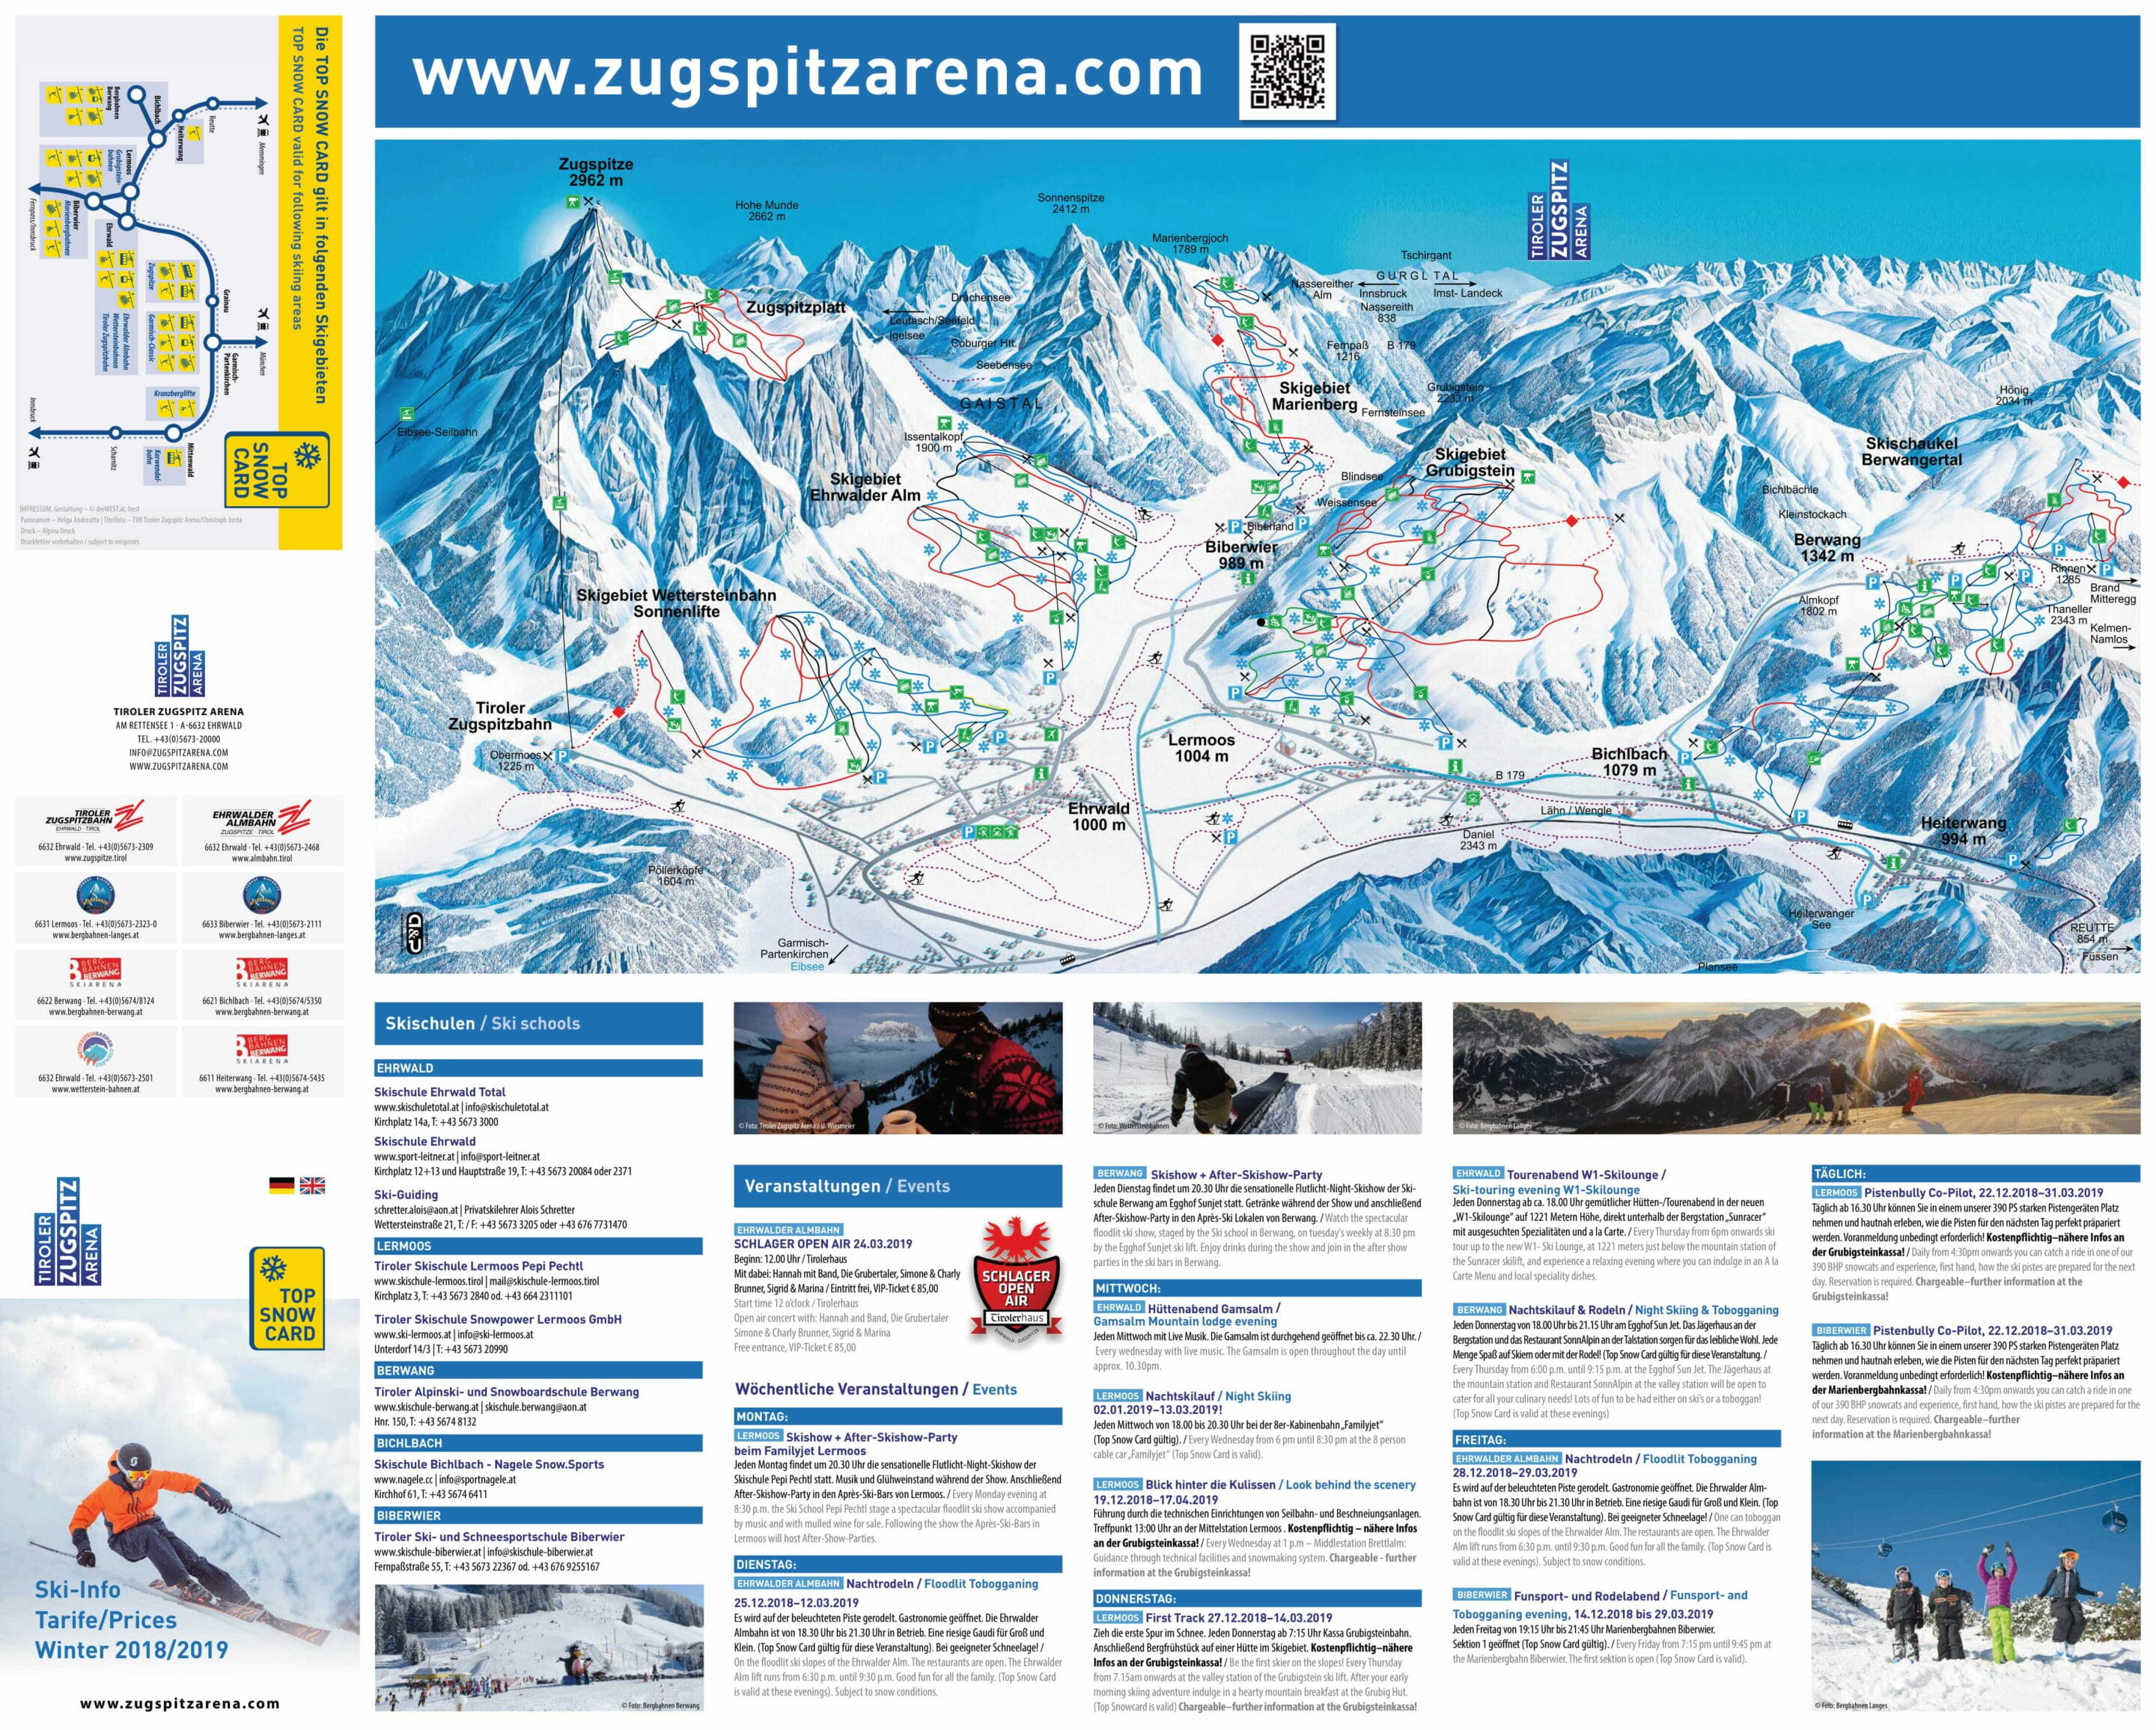 strig Zugspitz Arena Piste Map 2019 1 optimized scaled